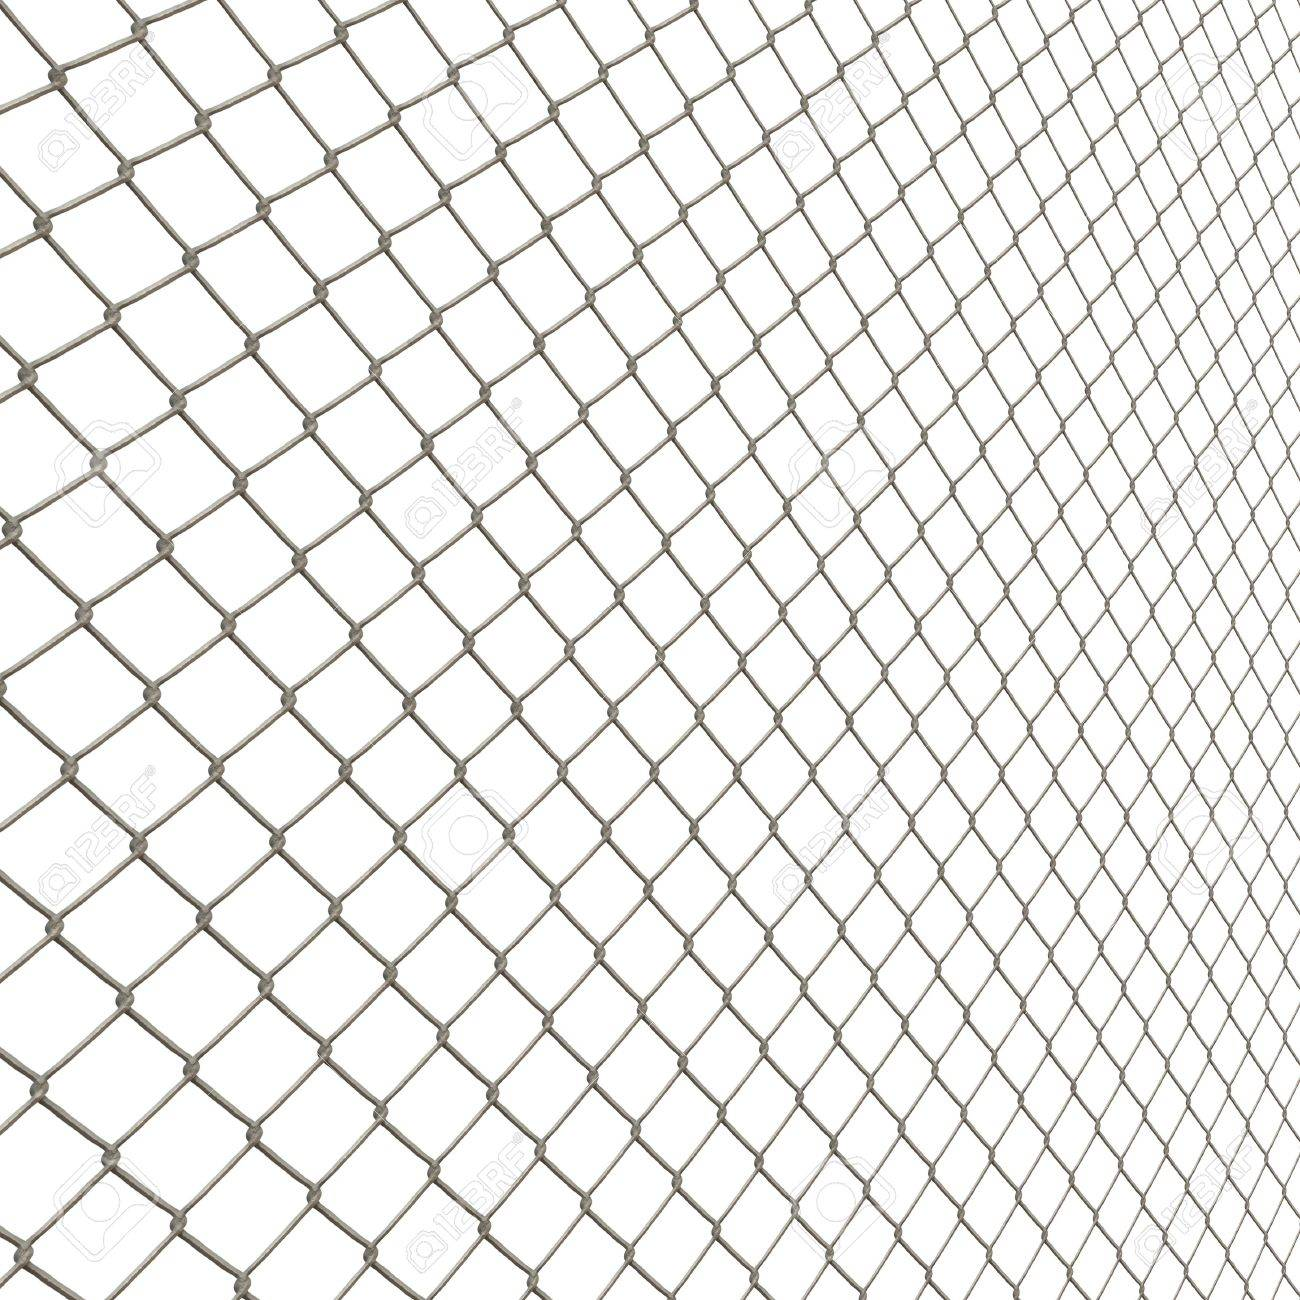 chain link drawing at getdrawings com